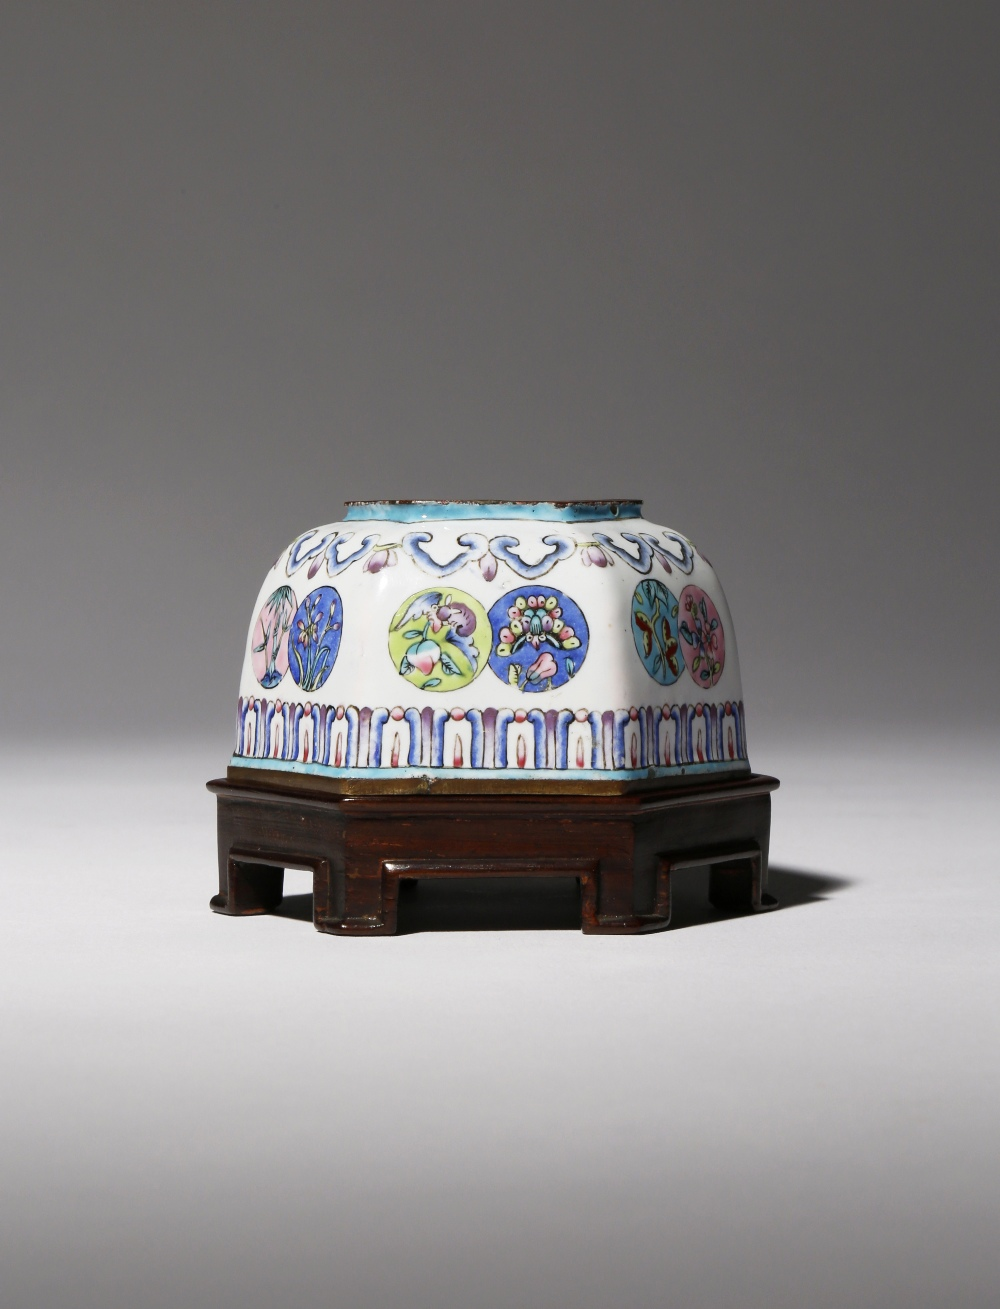 A CHINESE FAMILLE ROSE CANTON ENAMEL HEXAGONAL-SECTION WATERPOT 18TH CENTURY Each facet decorated